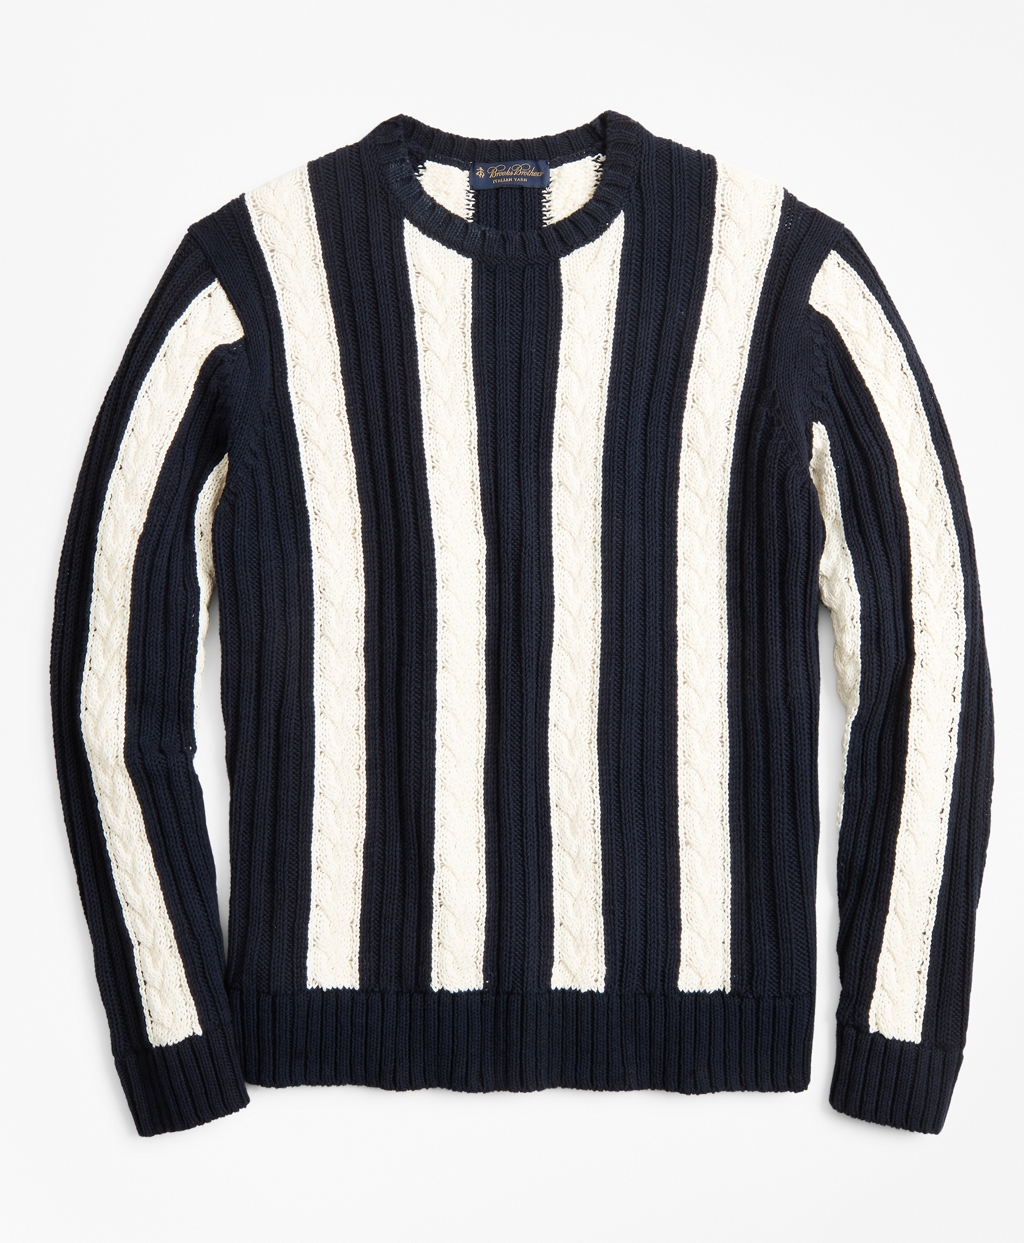 60s 70s Men's Jackets & Sweaters Brooks Brothers Mens Vertical Stripe Cable Crewneck Sweater $248.00 AT vintagedancer.com